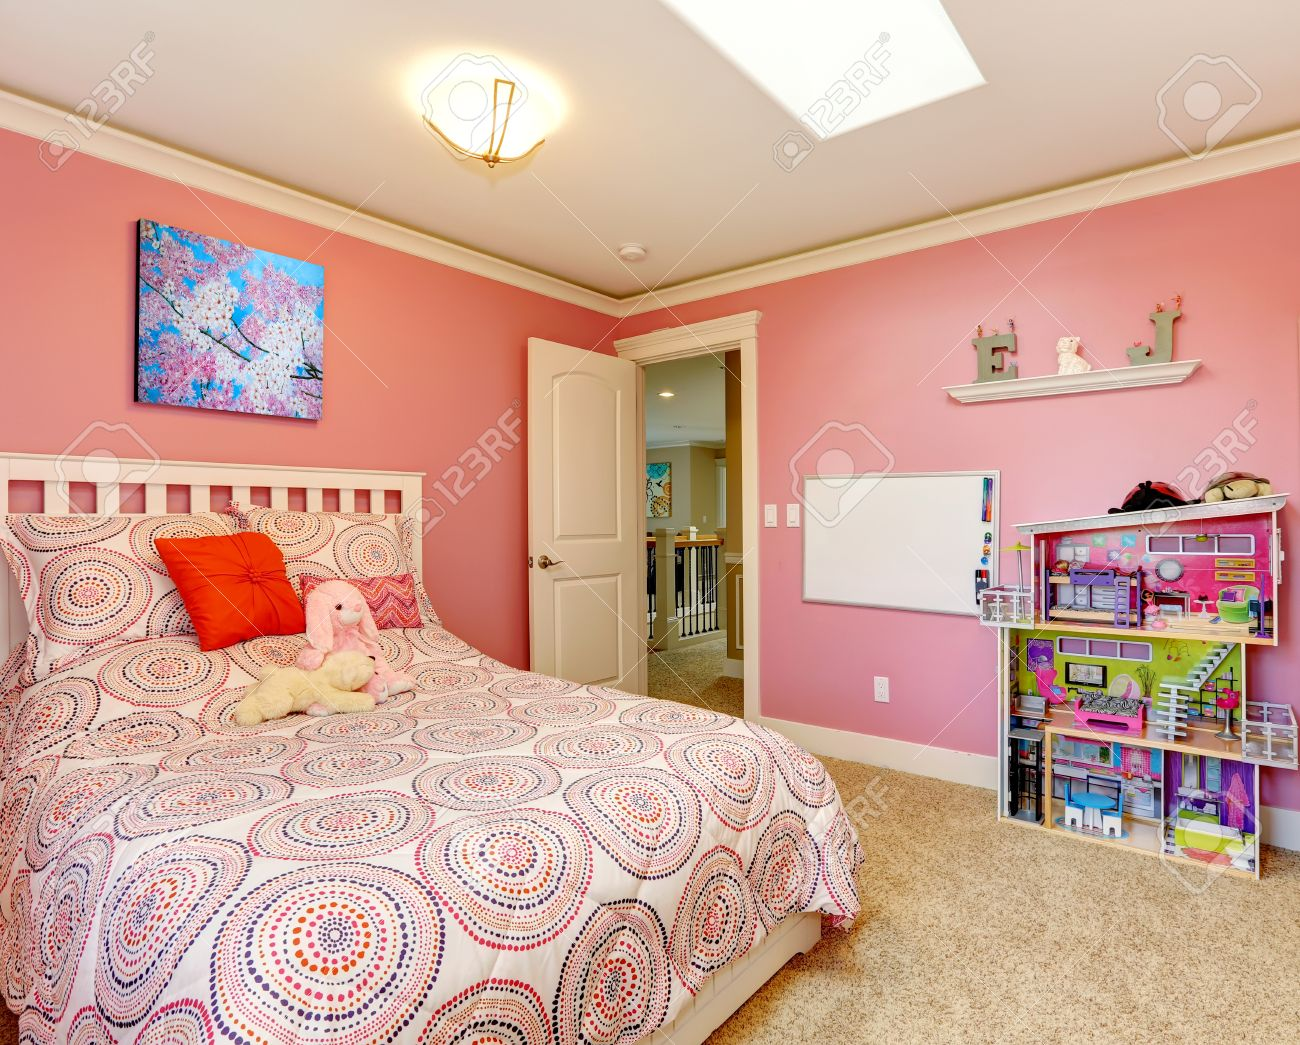 Gentle girls bedroom with white bed and pink walls View of board..